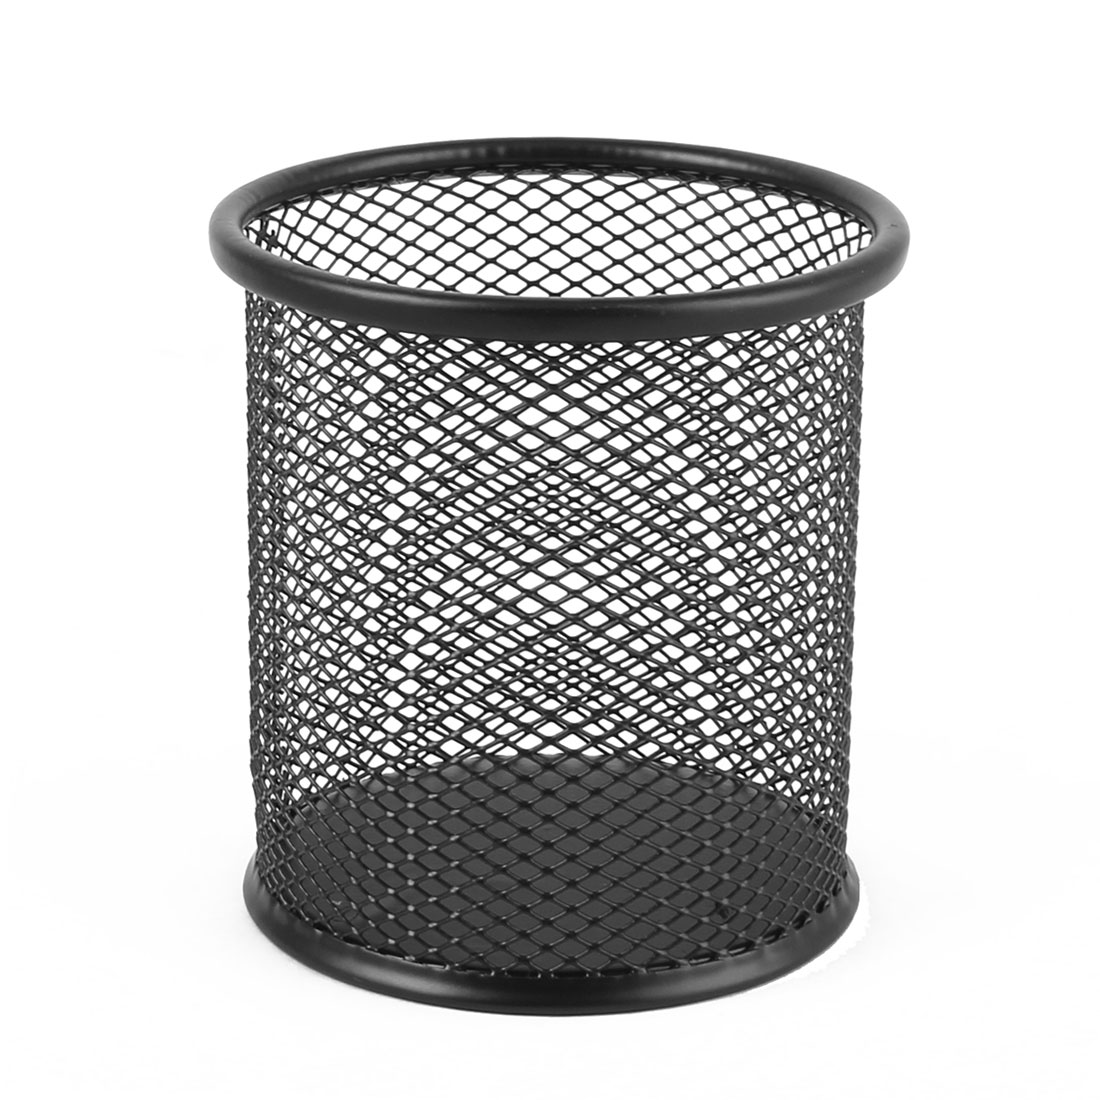 Round Black Netty Metal Pen Pencil Case Holder